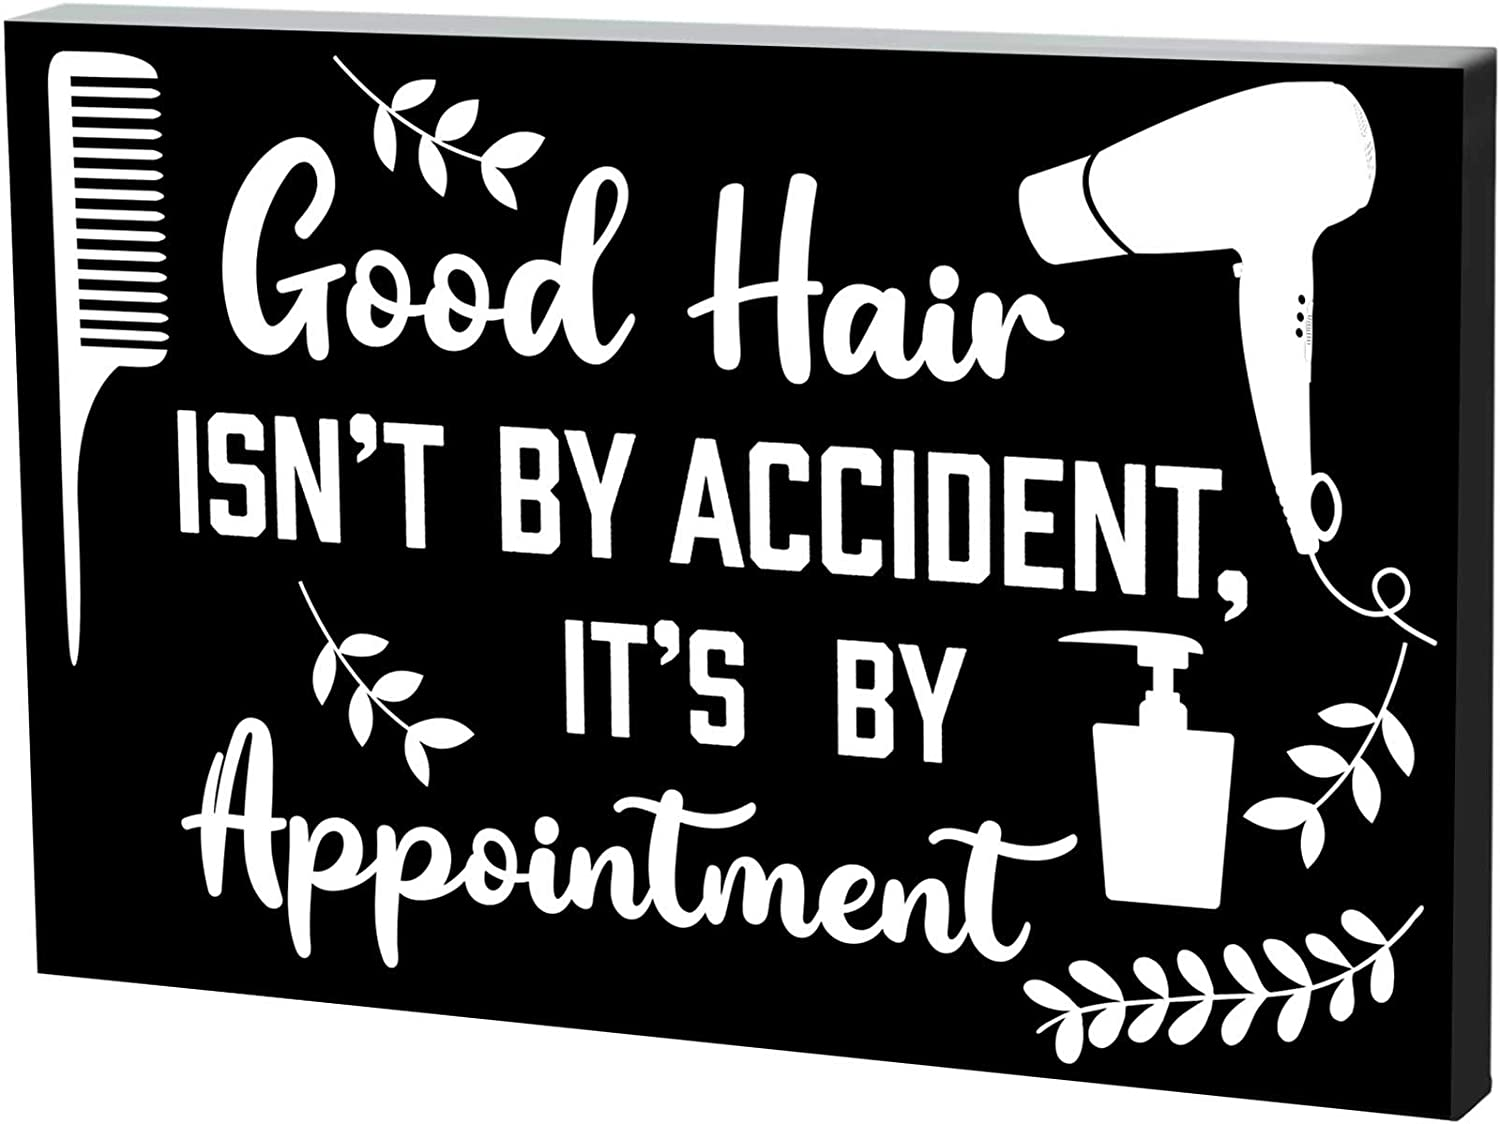 Hair Dresser Decor Sign Box Good Hair Isnt by Accident Its by Appointment Wood Sign 7.9 x 5.1 Inch Hair Salon Wooden Plaque Good Hair Wooden Sign Blocks for Home Wall Table Barber Shop Decoration